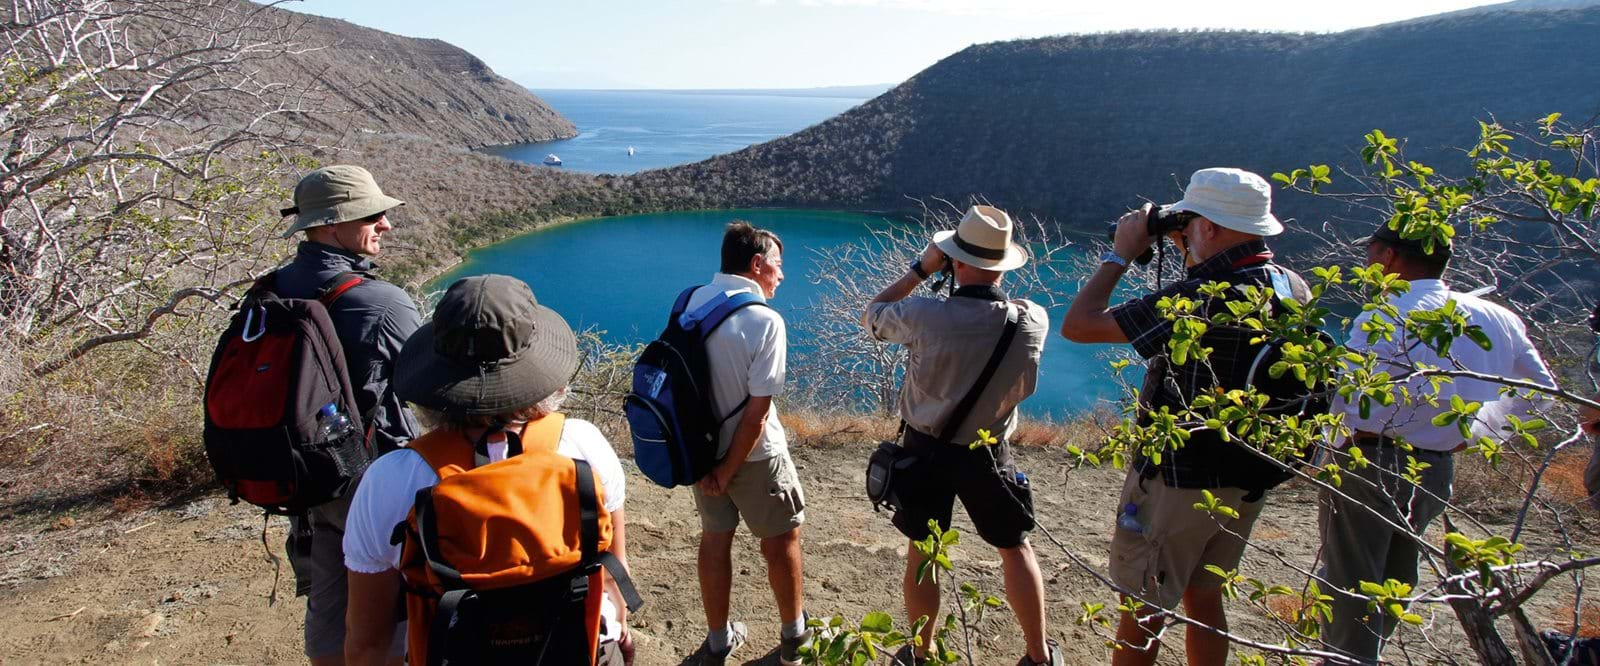 Galapagos, Travel, Travellers, Landscape, Hiking